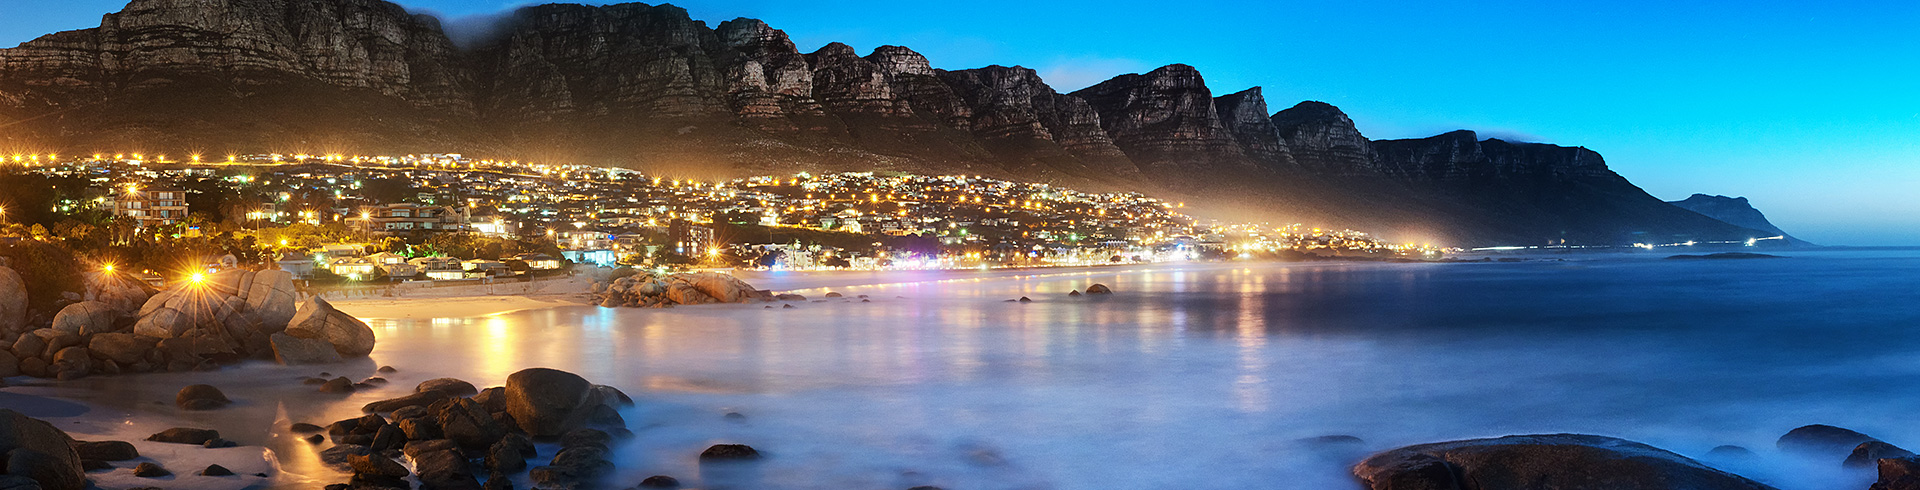 Discounted flight tickets to Cape Town - IFlyFirstClass